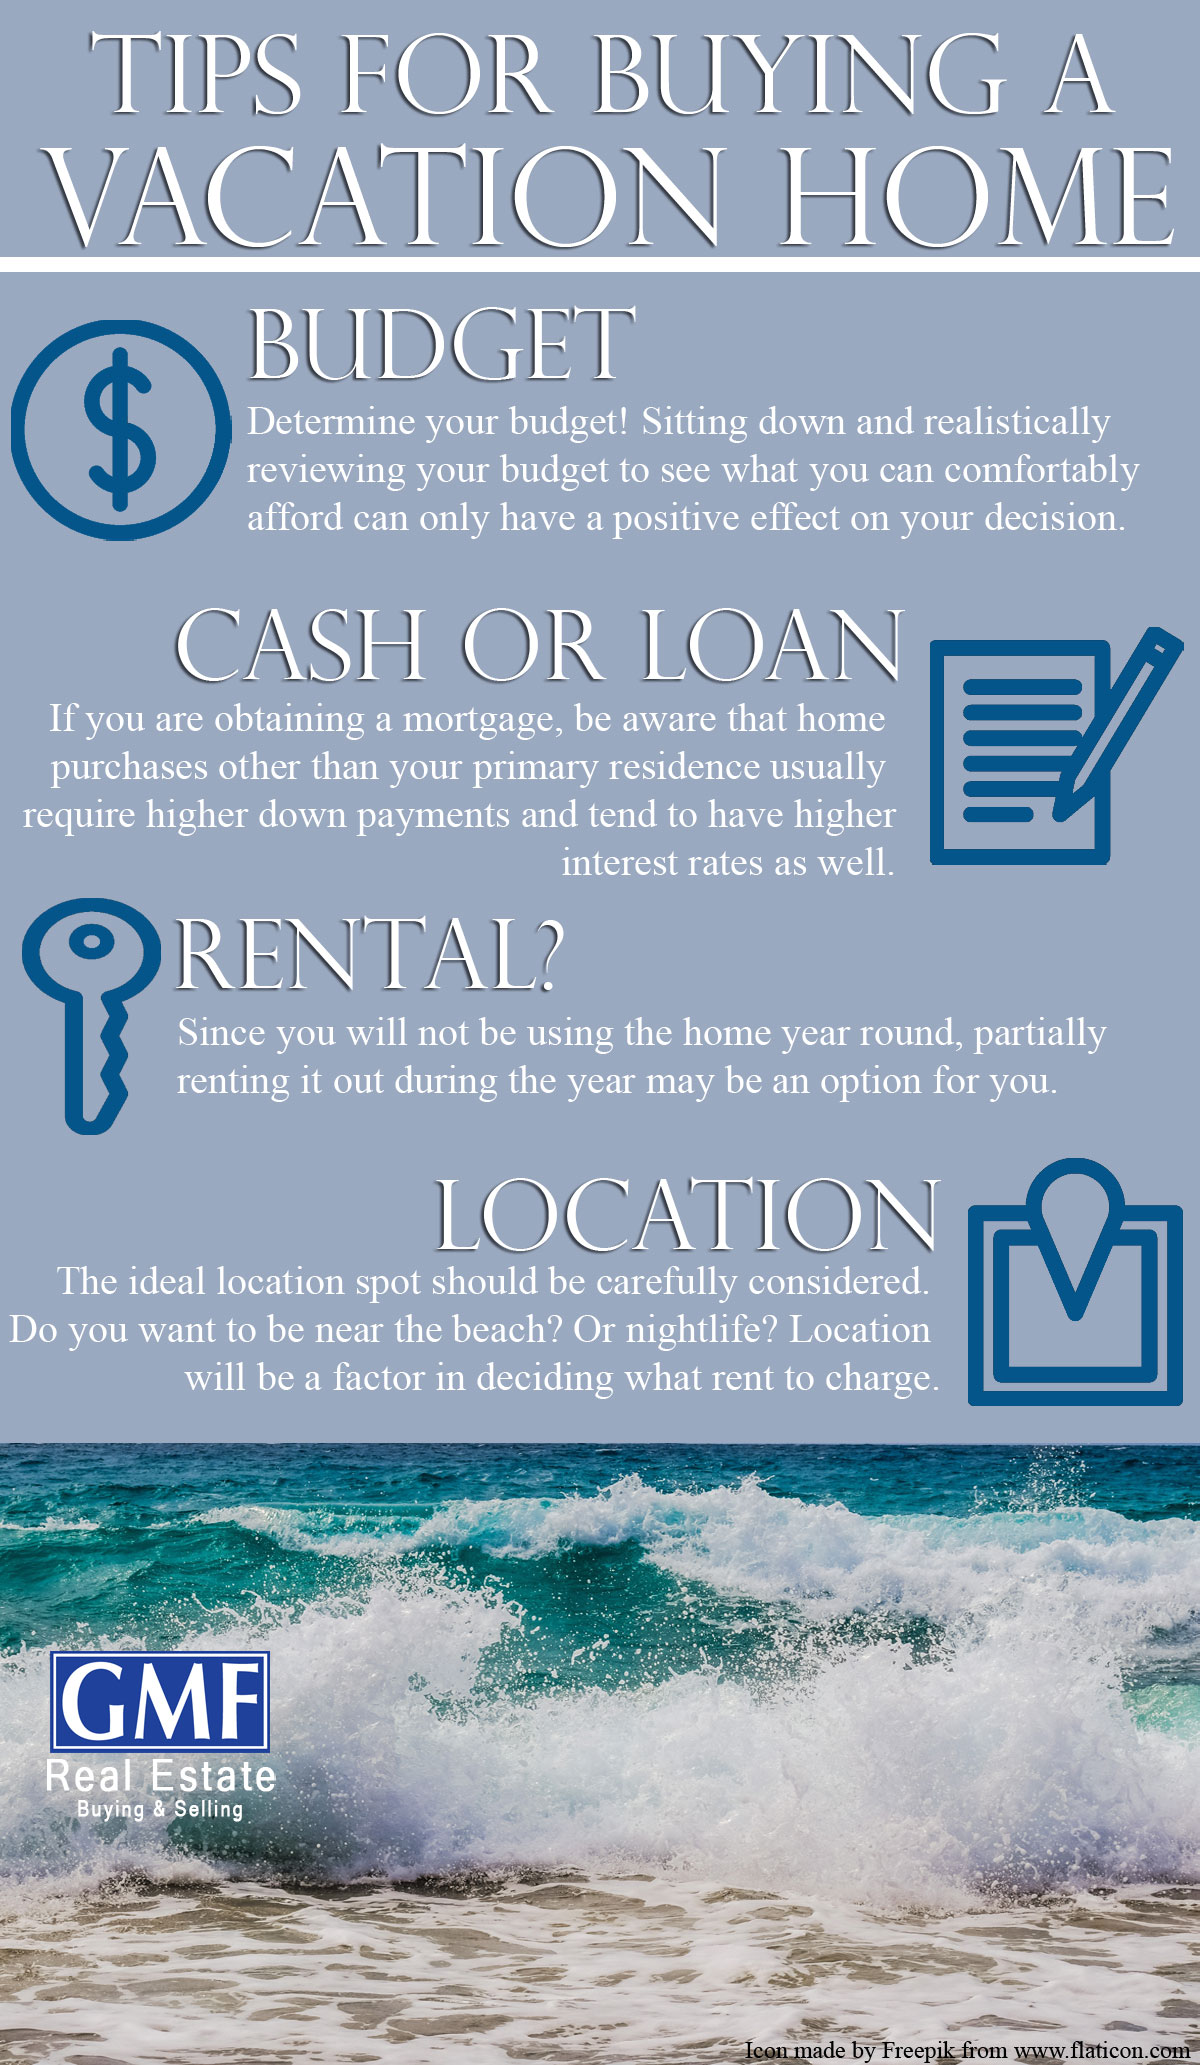 Tips for buying a Vacation home in Florida